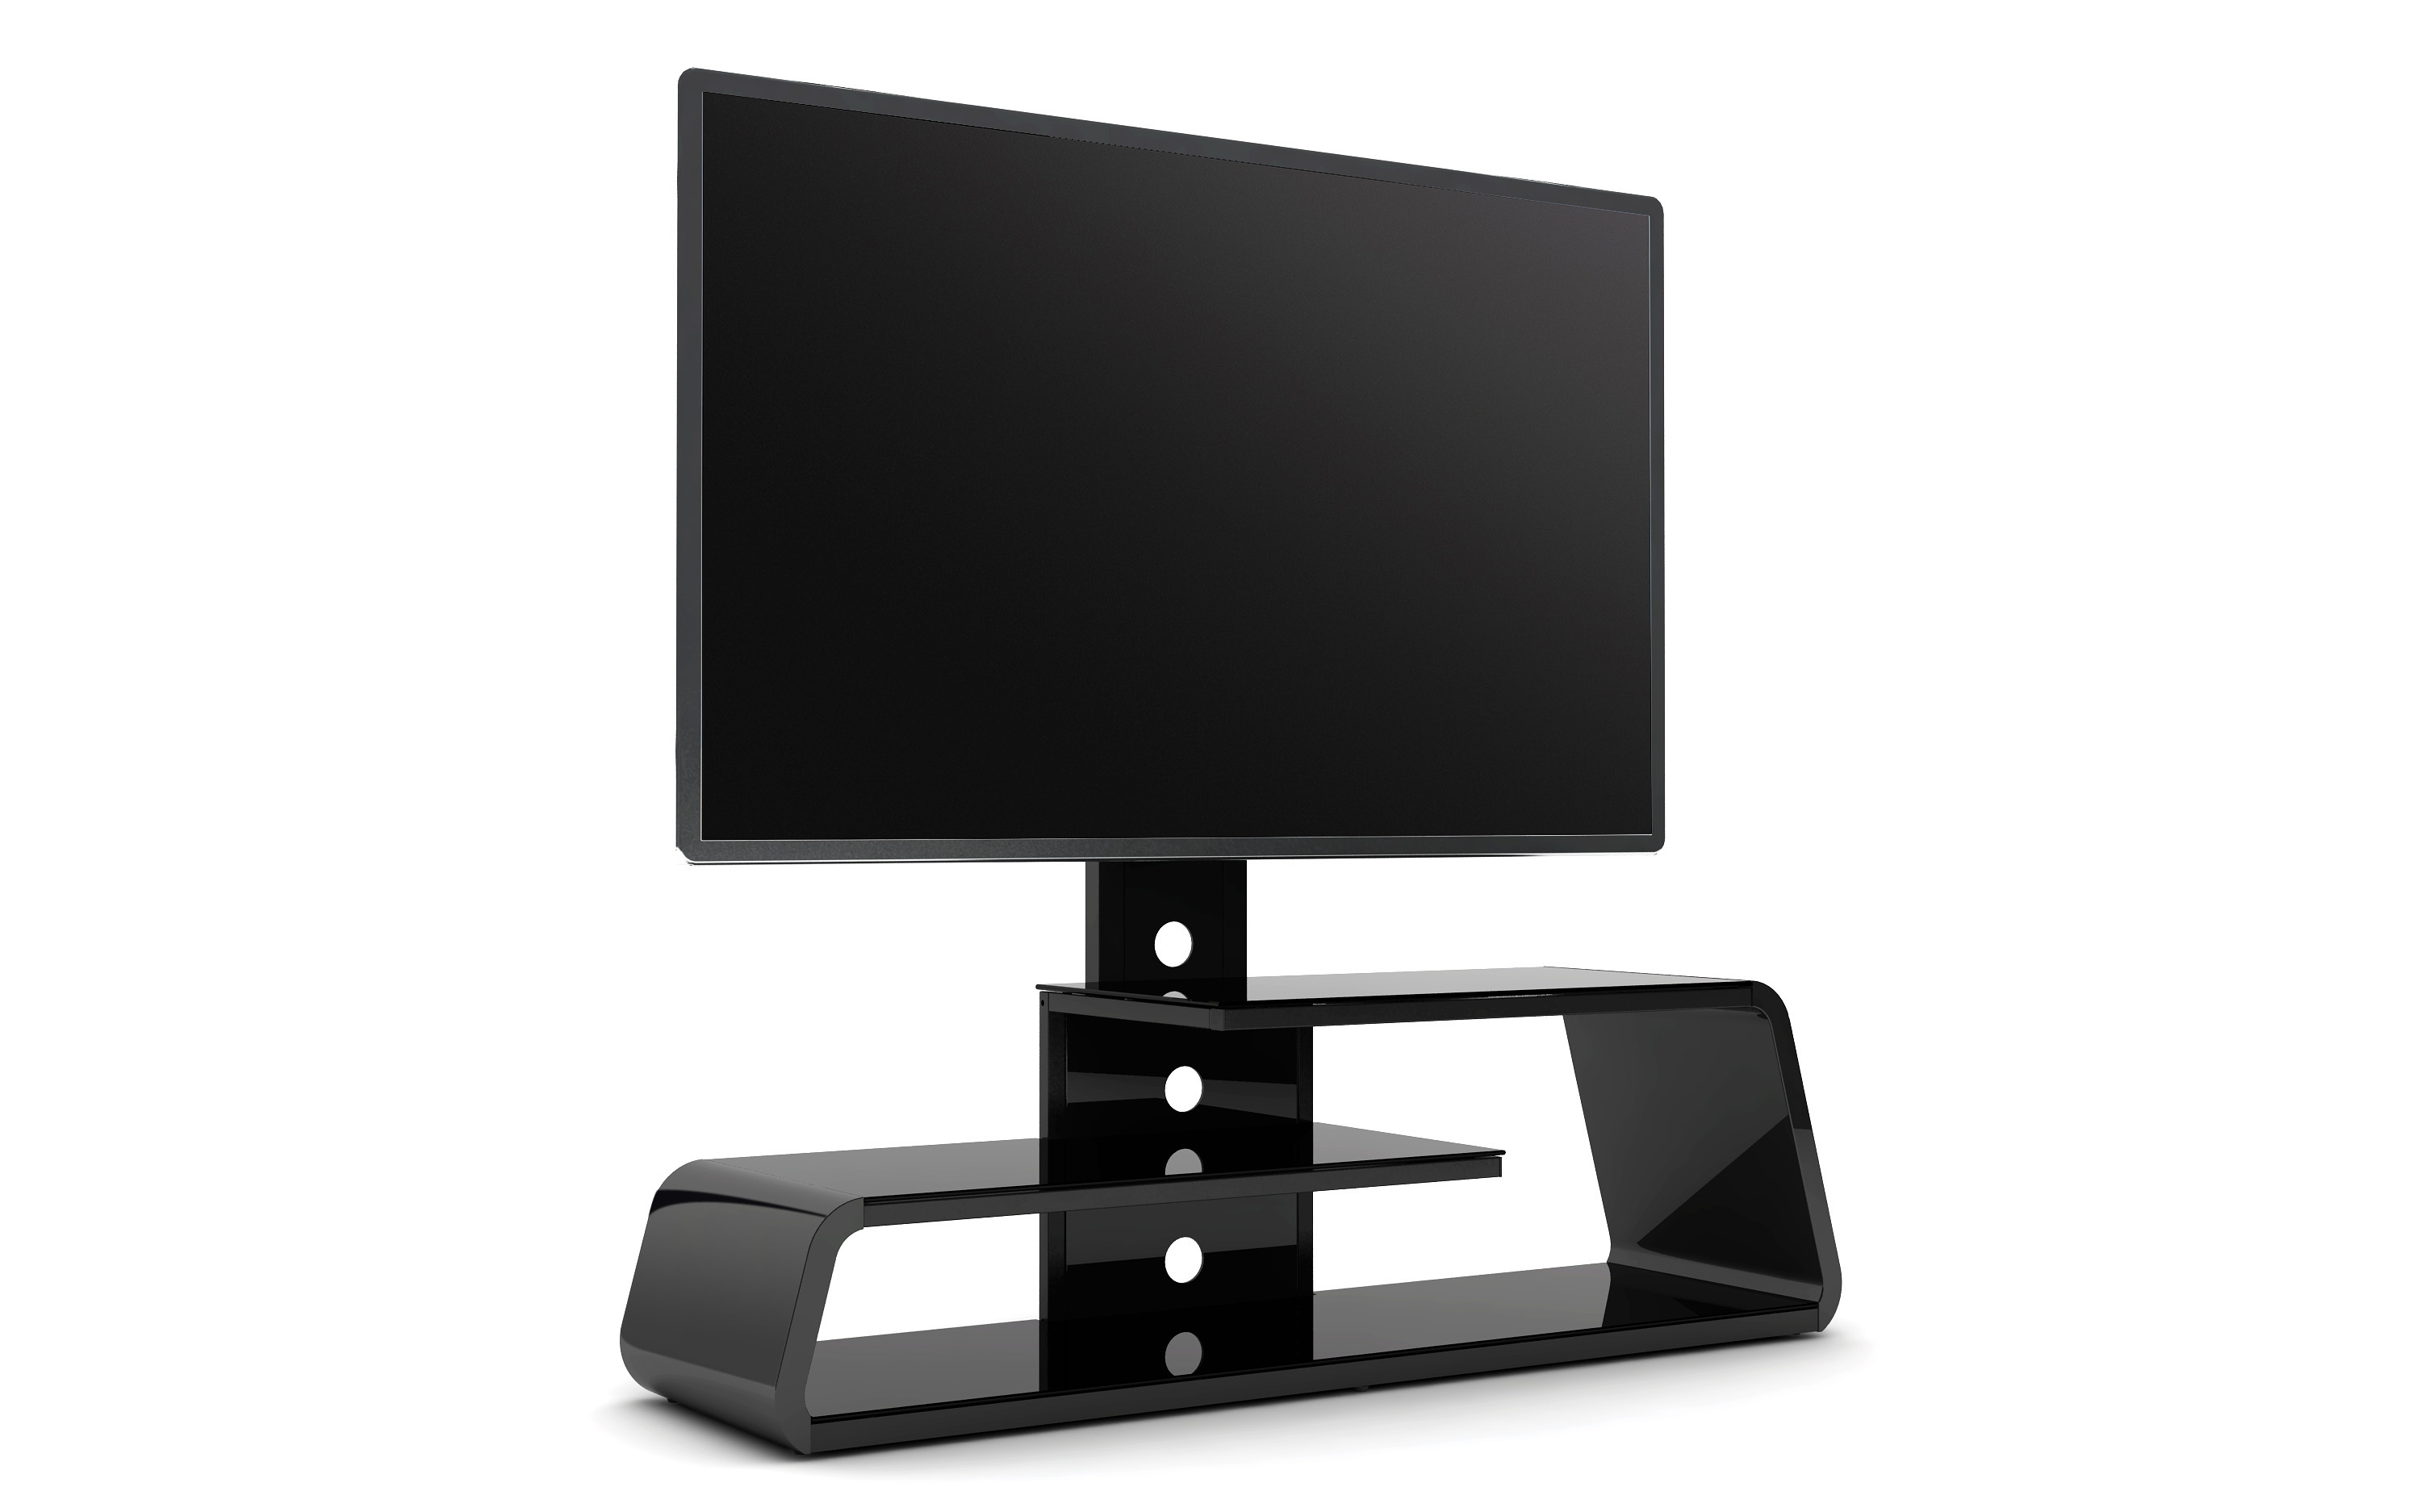 Fashionable Led Tv Stand Wall Design Table Flipkart Images Price In Bd Samsung Within Cheap Tv Table Stands (View 19 of 20)